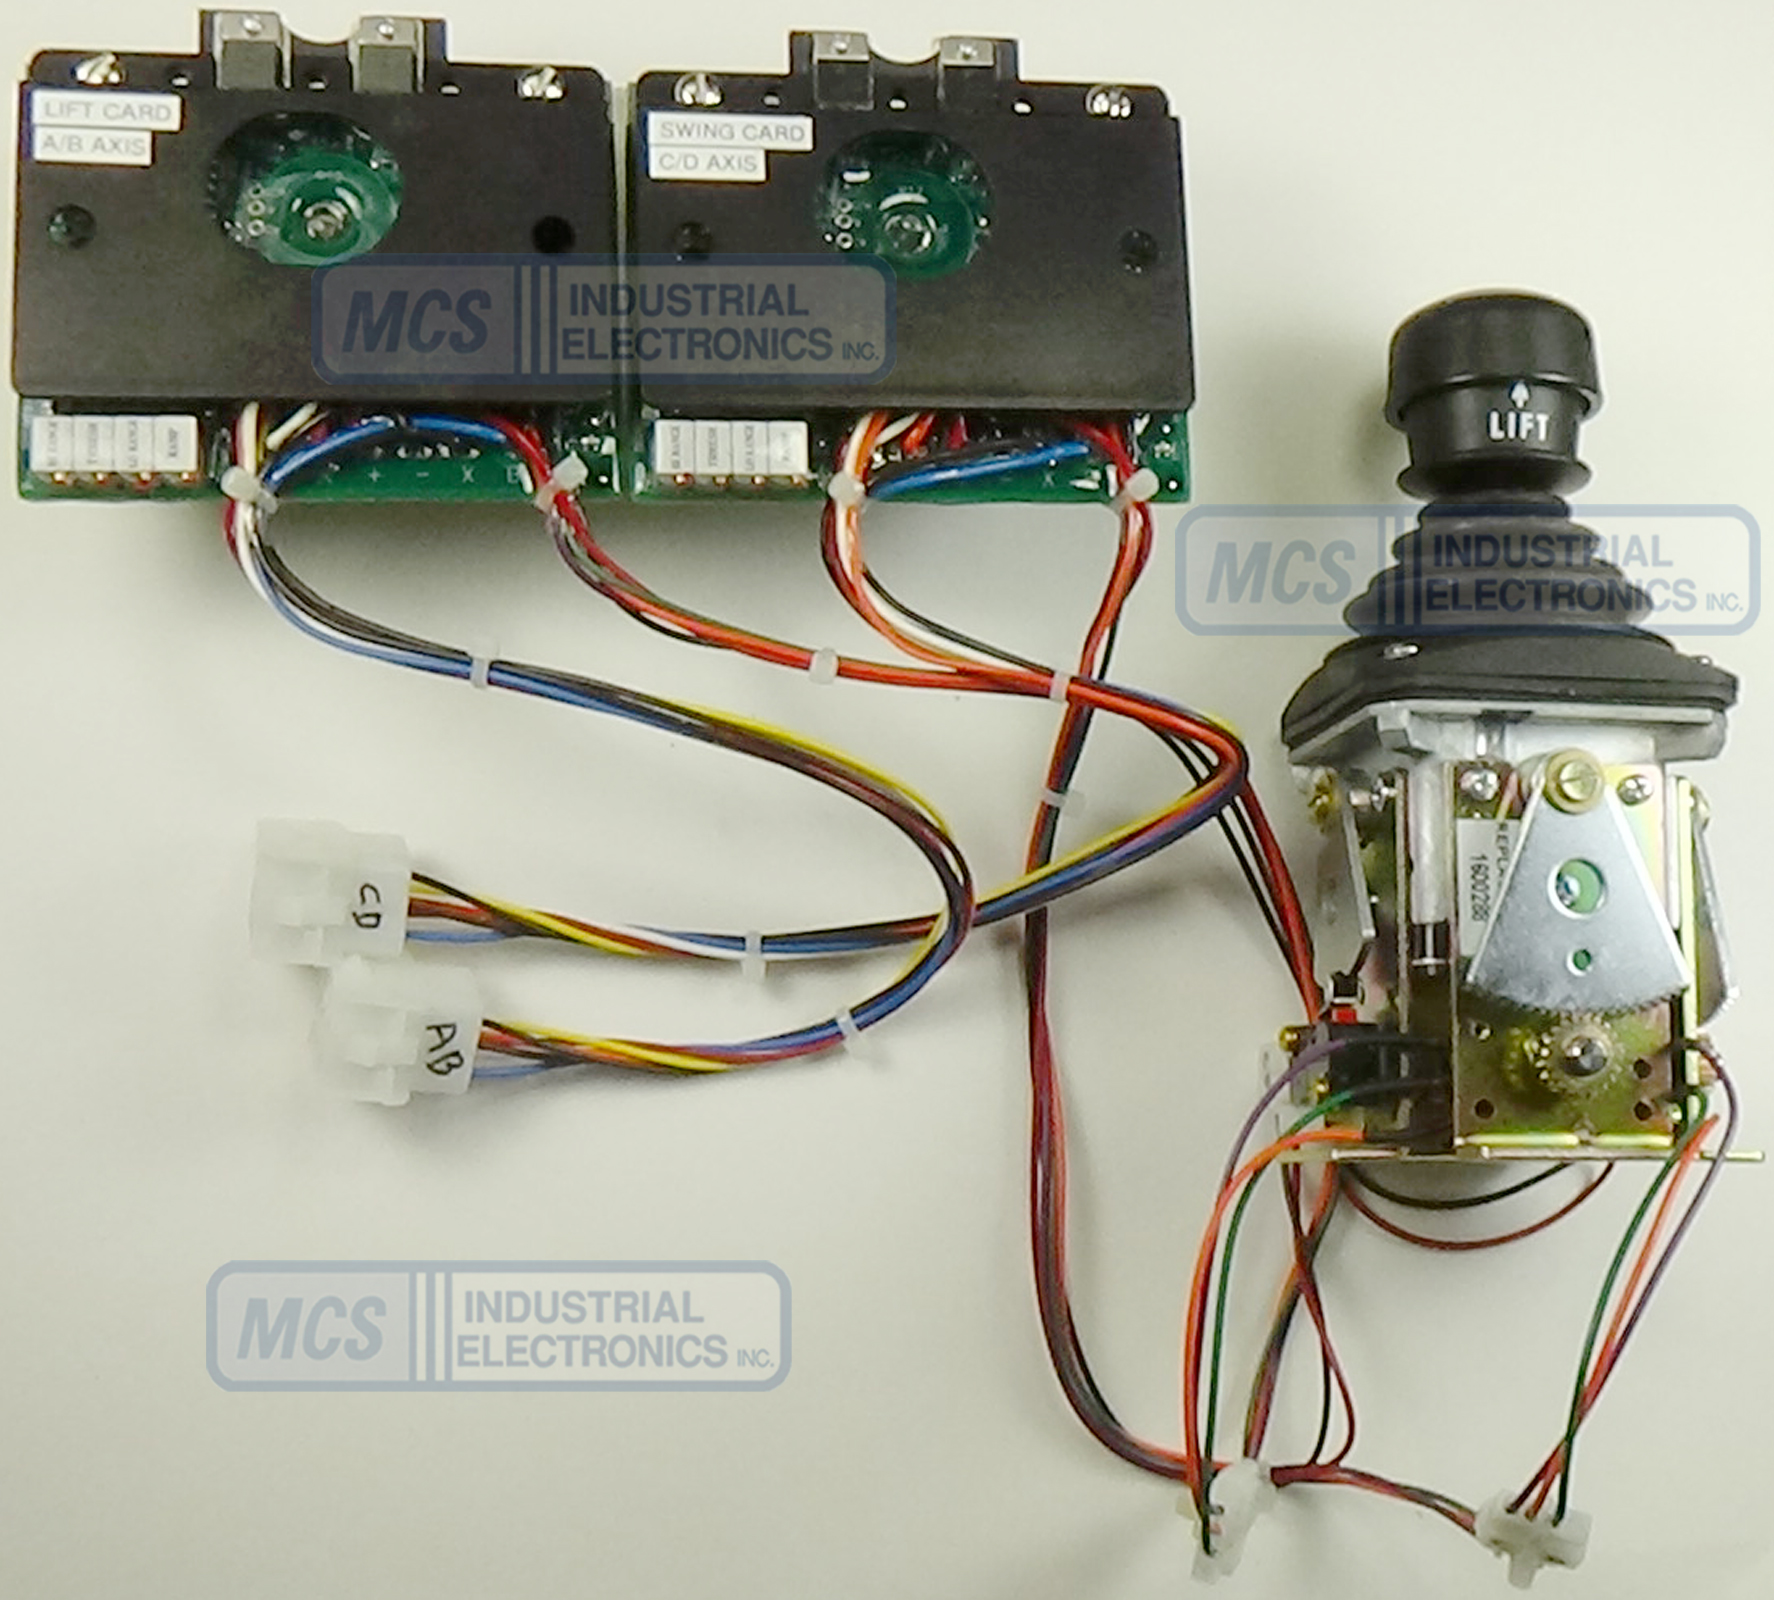 1600288 Jlg Joystick Controller From Mcs Industrial One Stop Shop Electronic Wiring